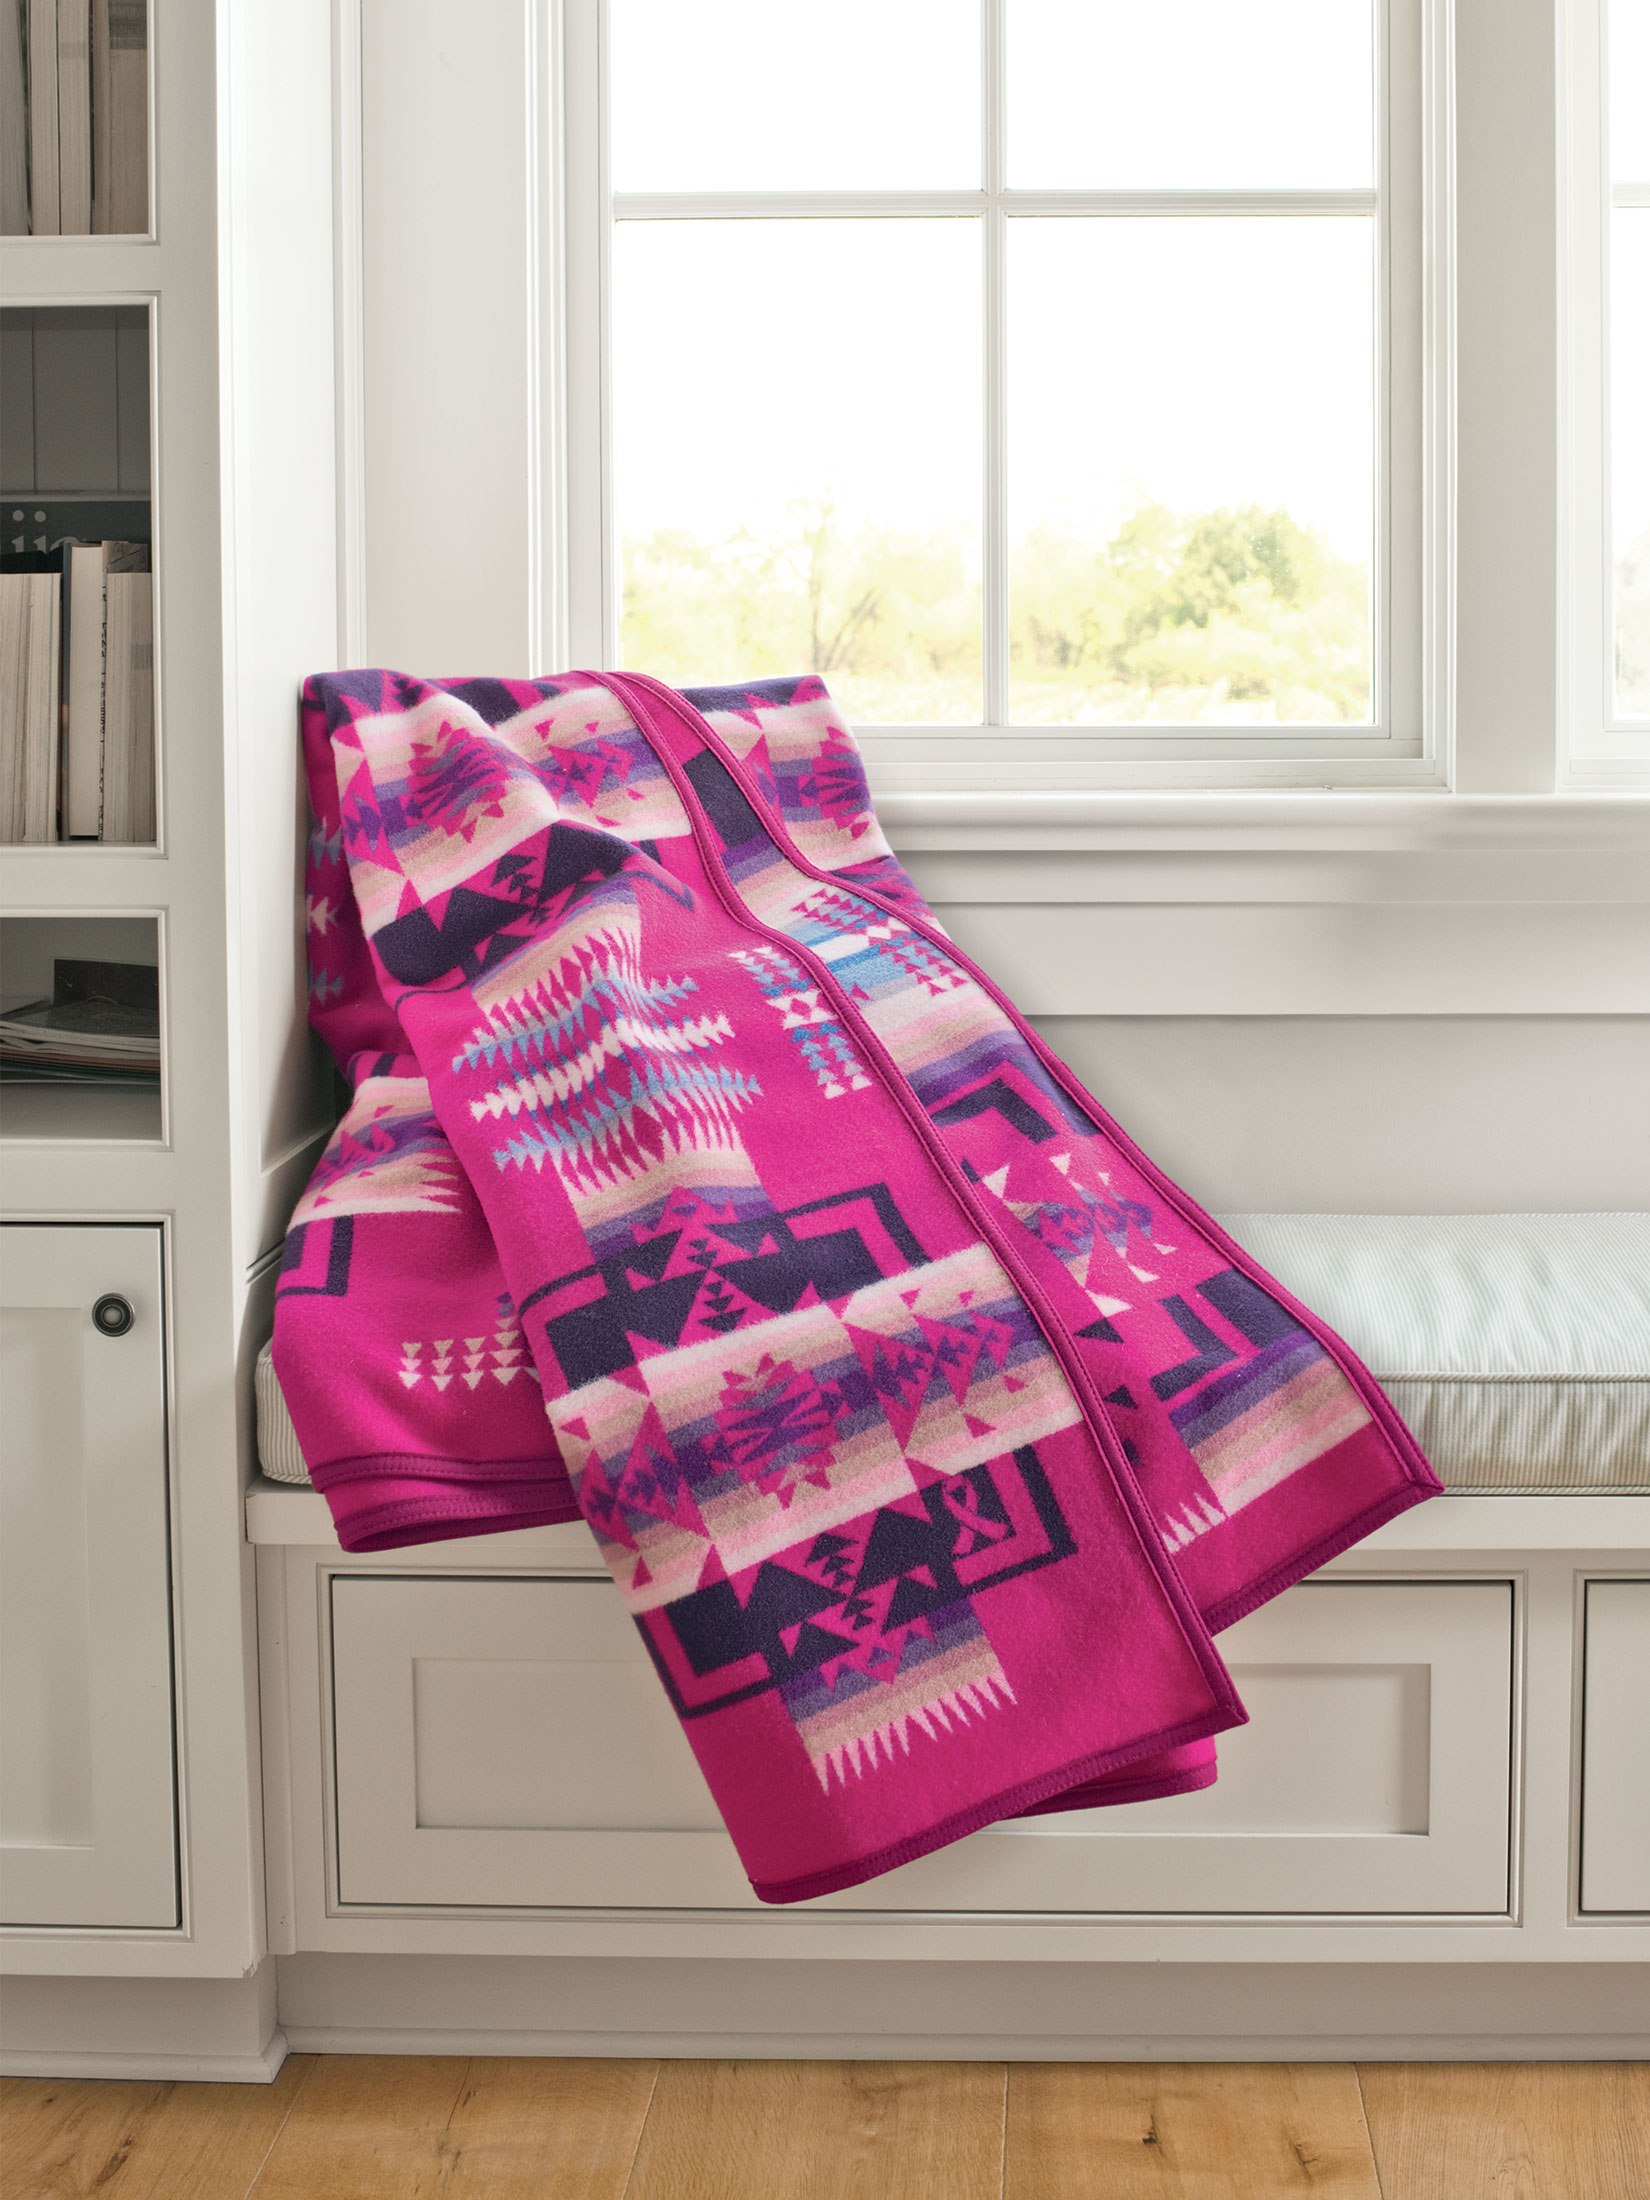 A window seat with a white cushion and the special cherry pink color Chief Joseph blanket.